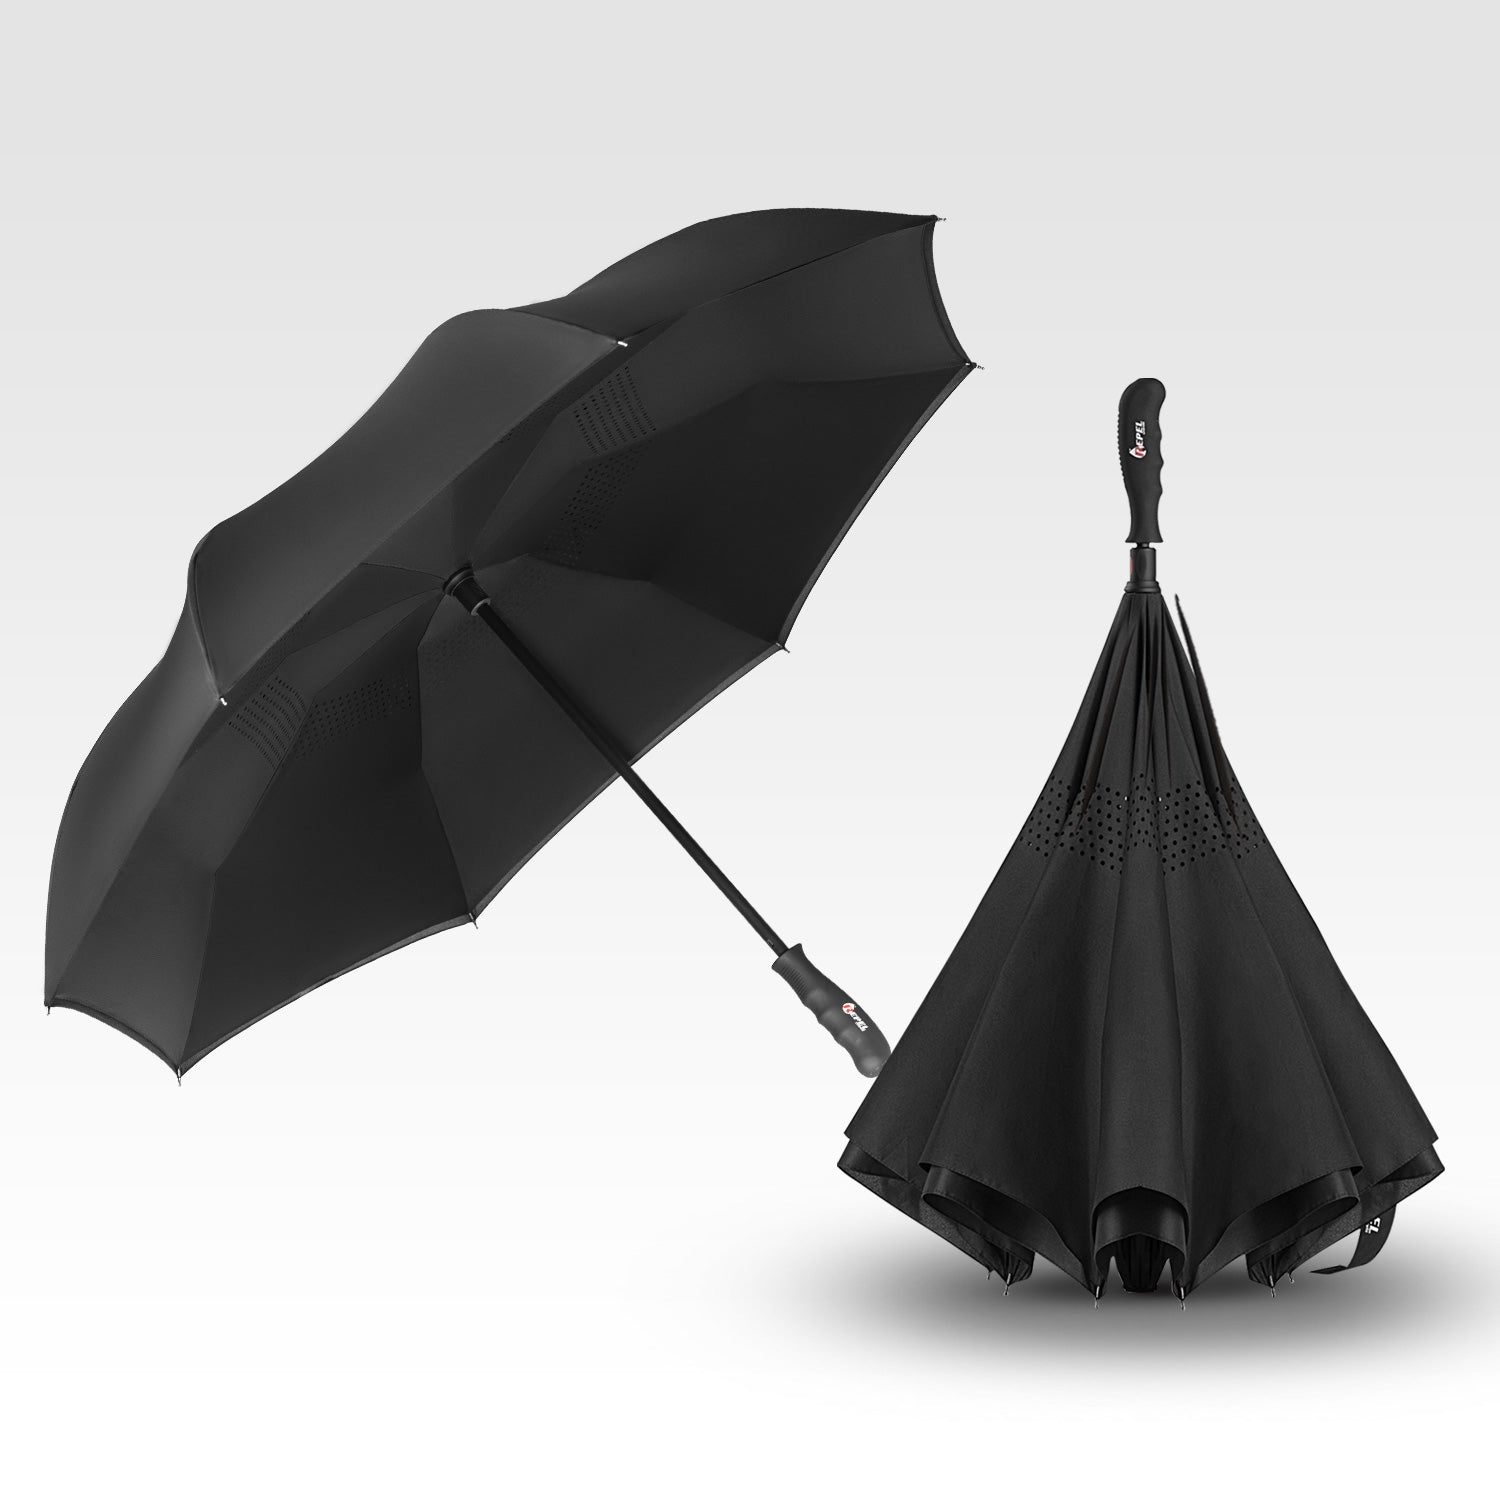 Why The Repel Inverted Umbrella Will Be The Last Umbrella You Ever Buy